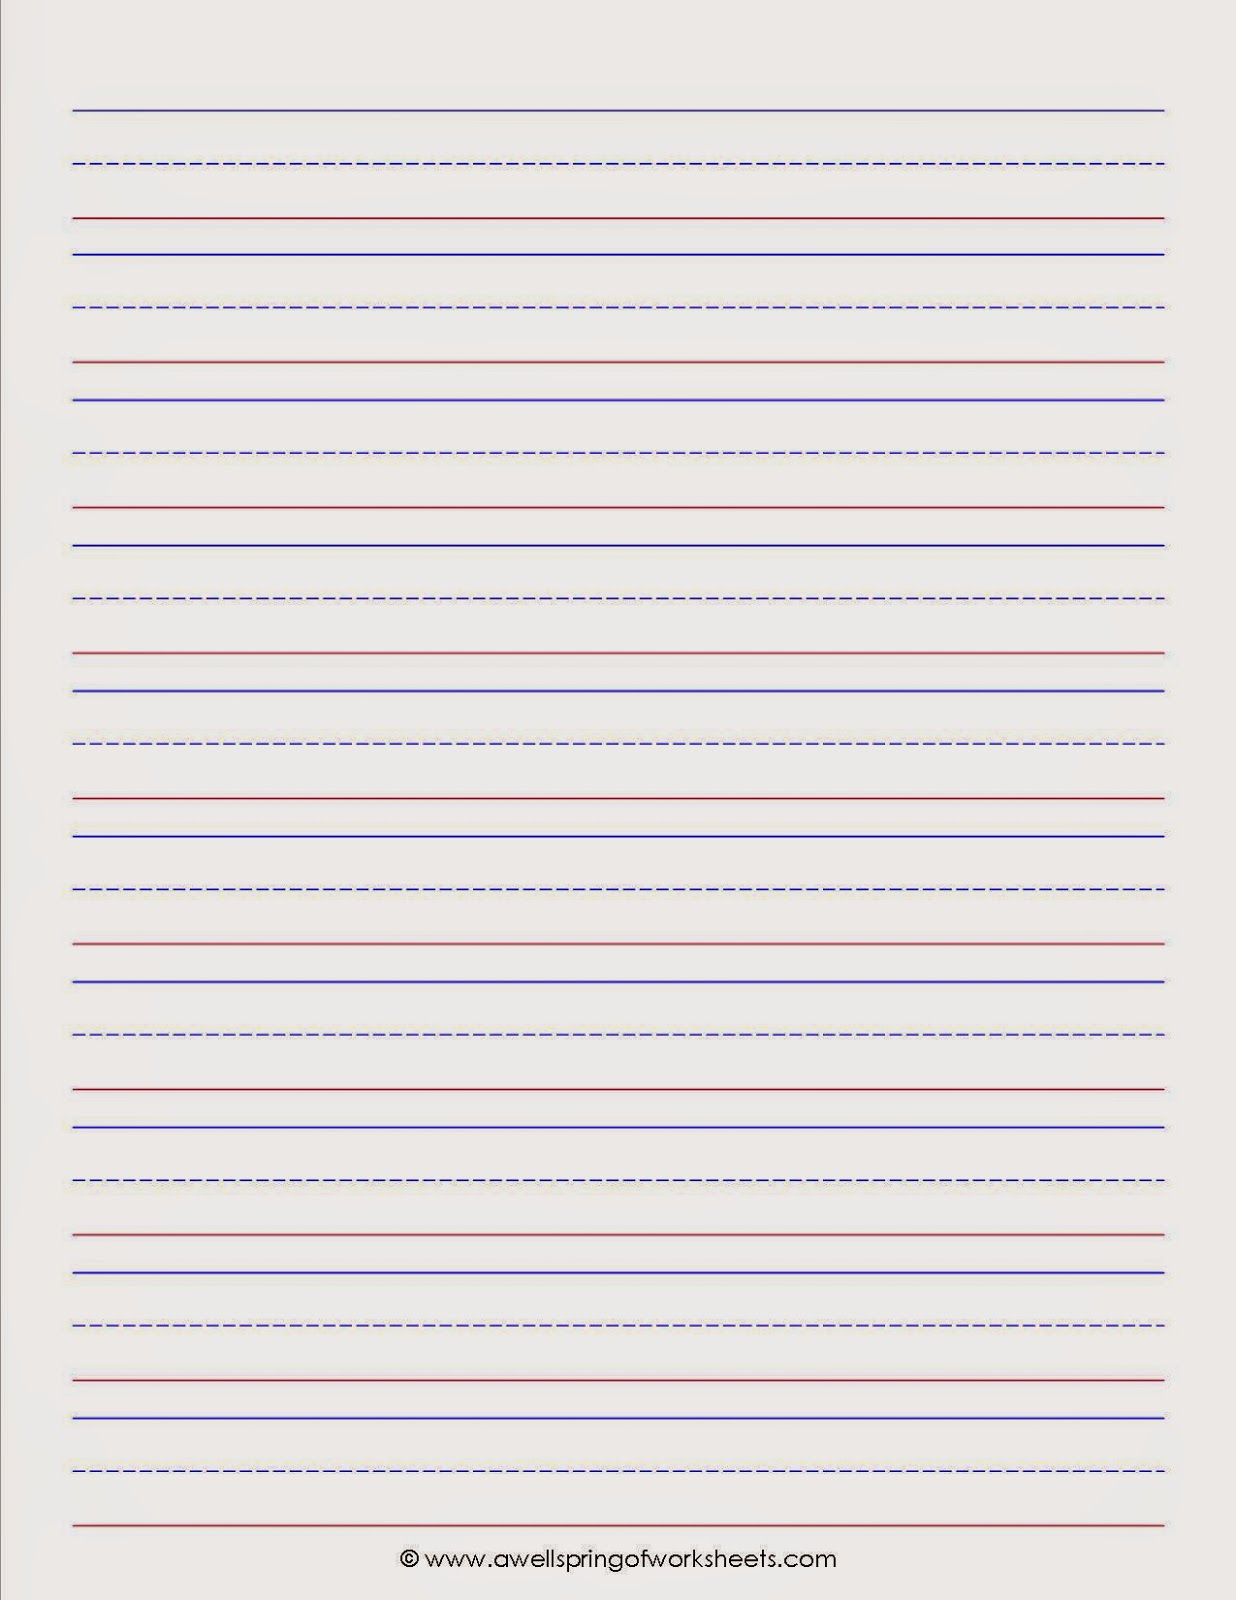 handwriting lined paper for kindergarten and 1st grade by carrie